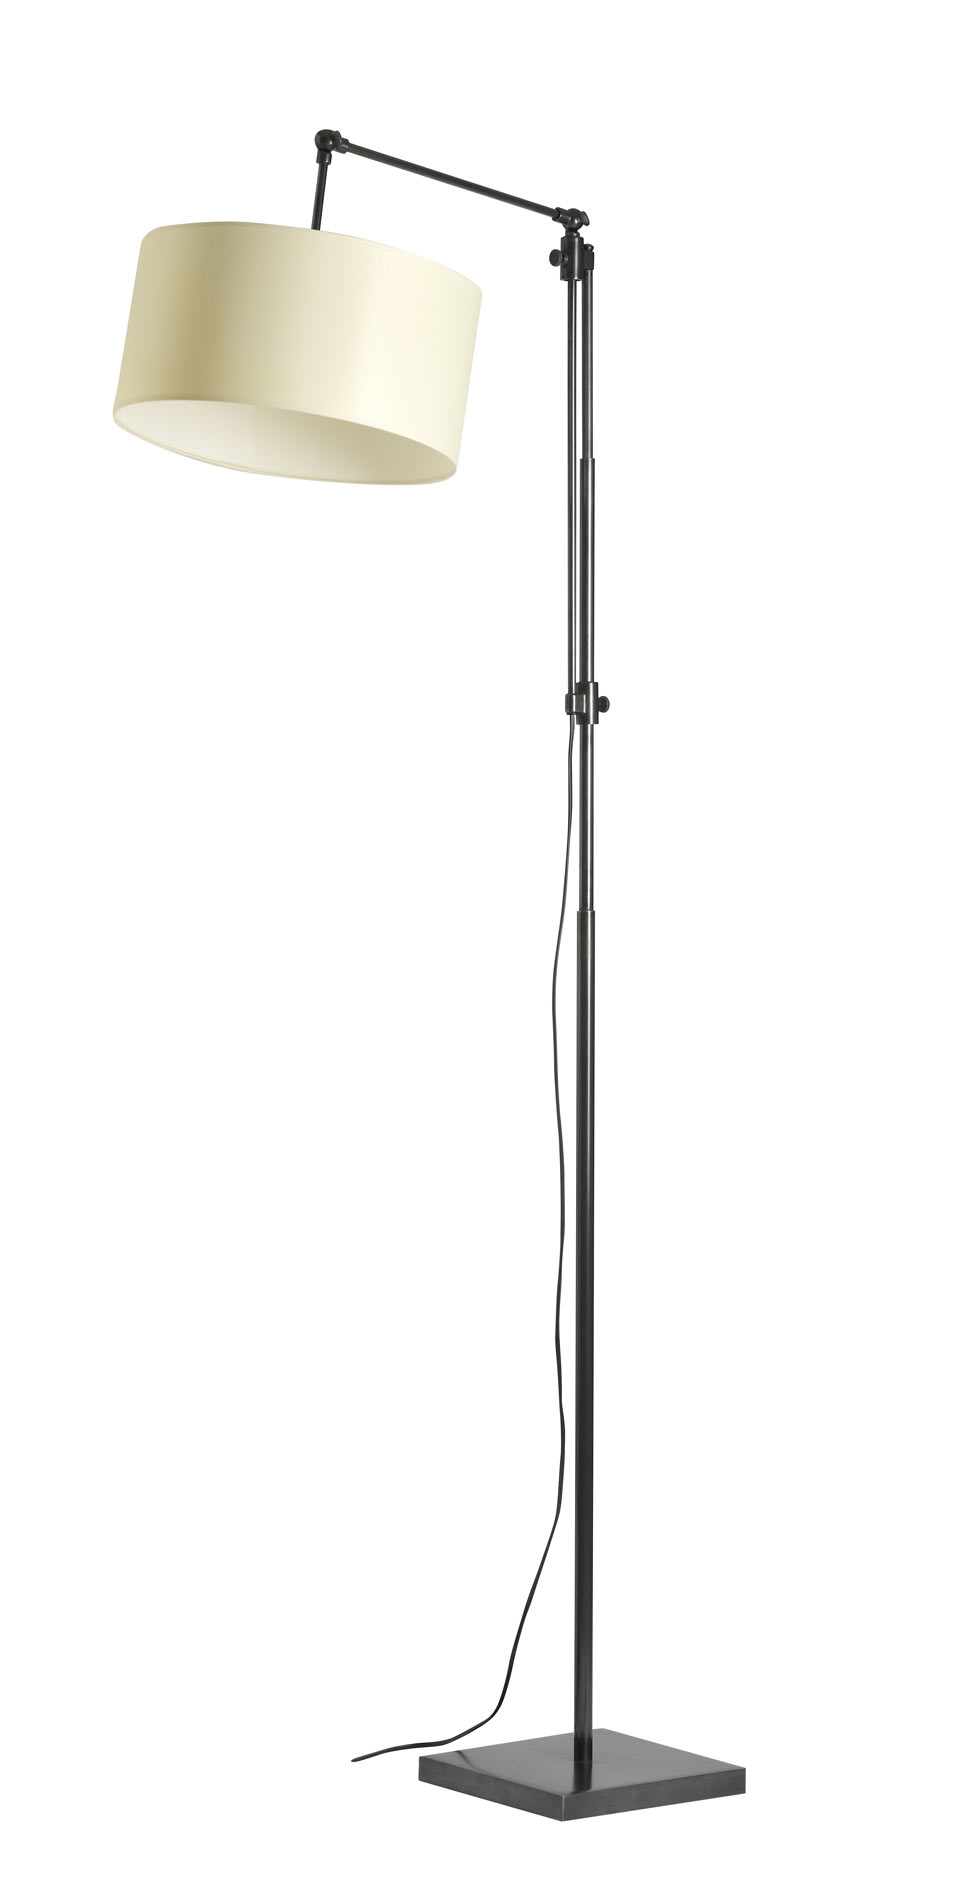 Large floor lamp reading lamp with gallows, round lampshade black patinated metal LD30. Casadisagne.